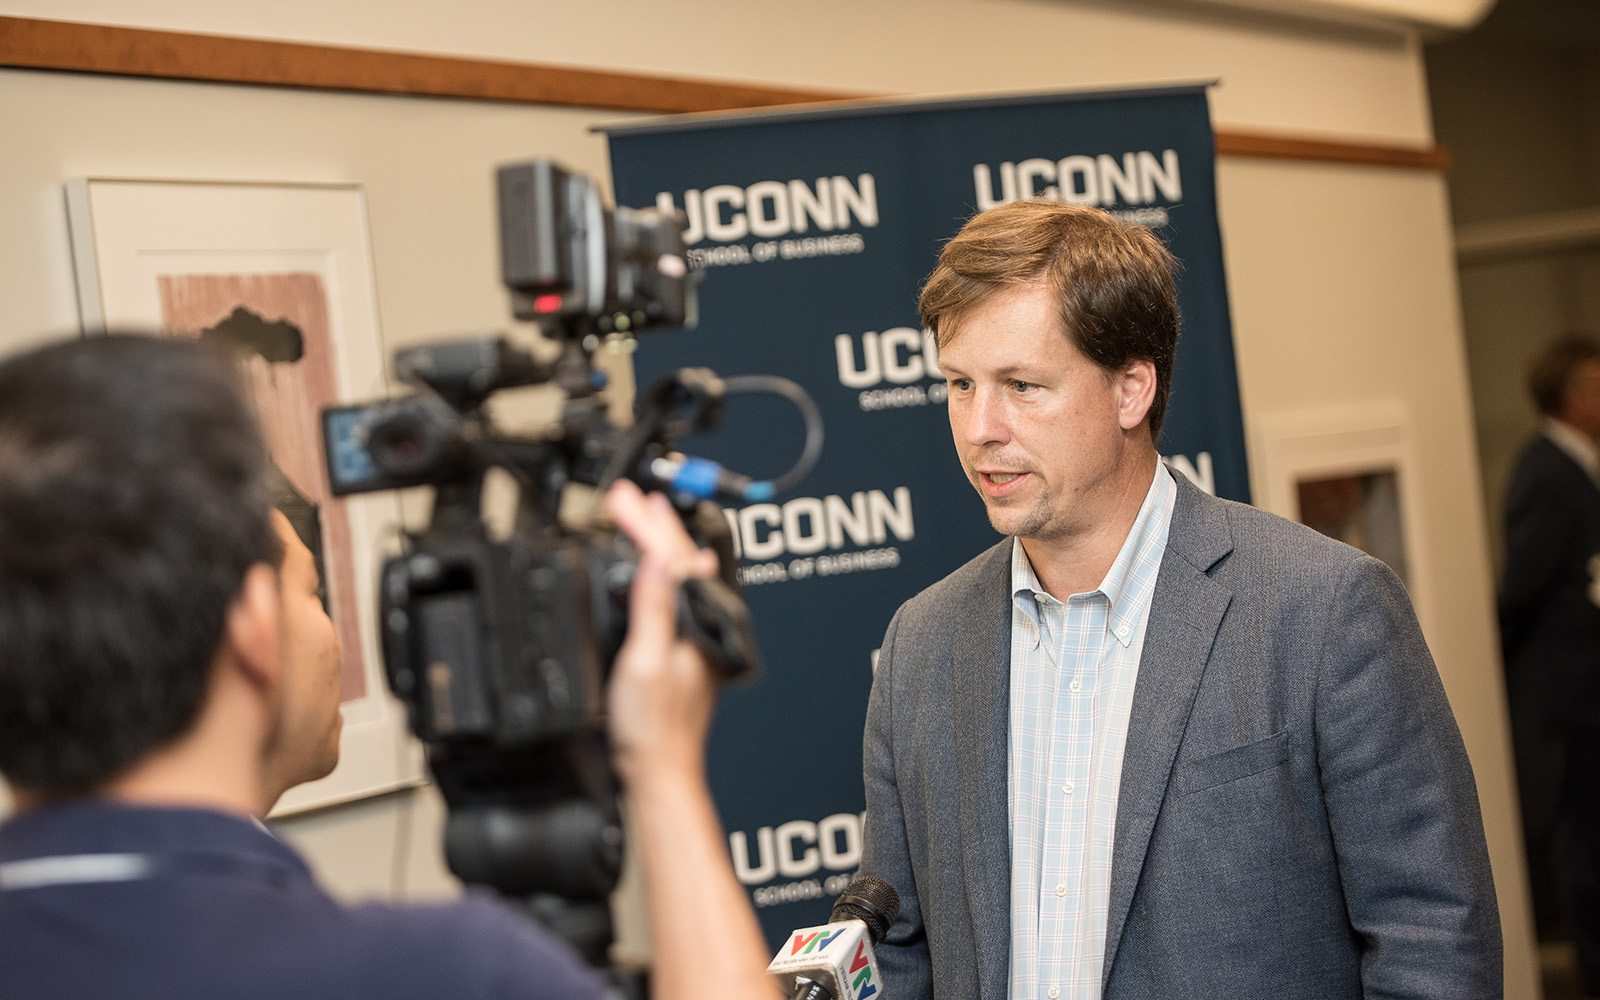 Professor David Noble, co-chair of the UConn Blockchain symposium, is interviewed by a reporter from Vietnam's state news agency. (Nathan Oldham/UConn School of Business)